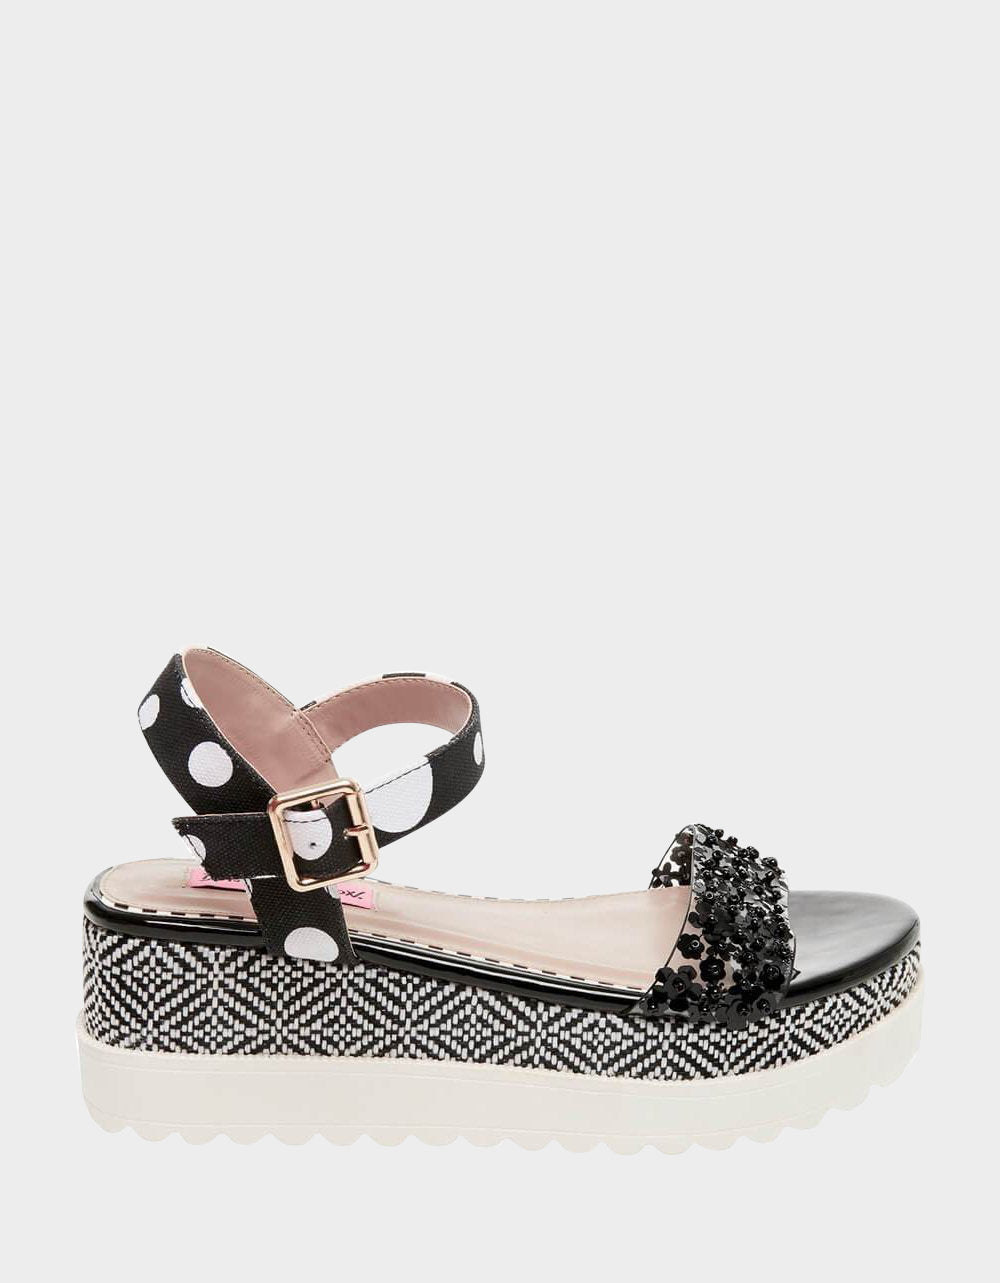 FAEGAN BLACK MULTI - SHOES - Betsey Johnson